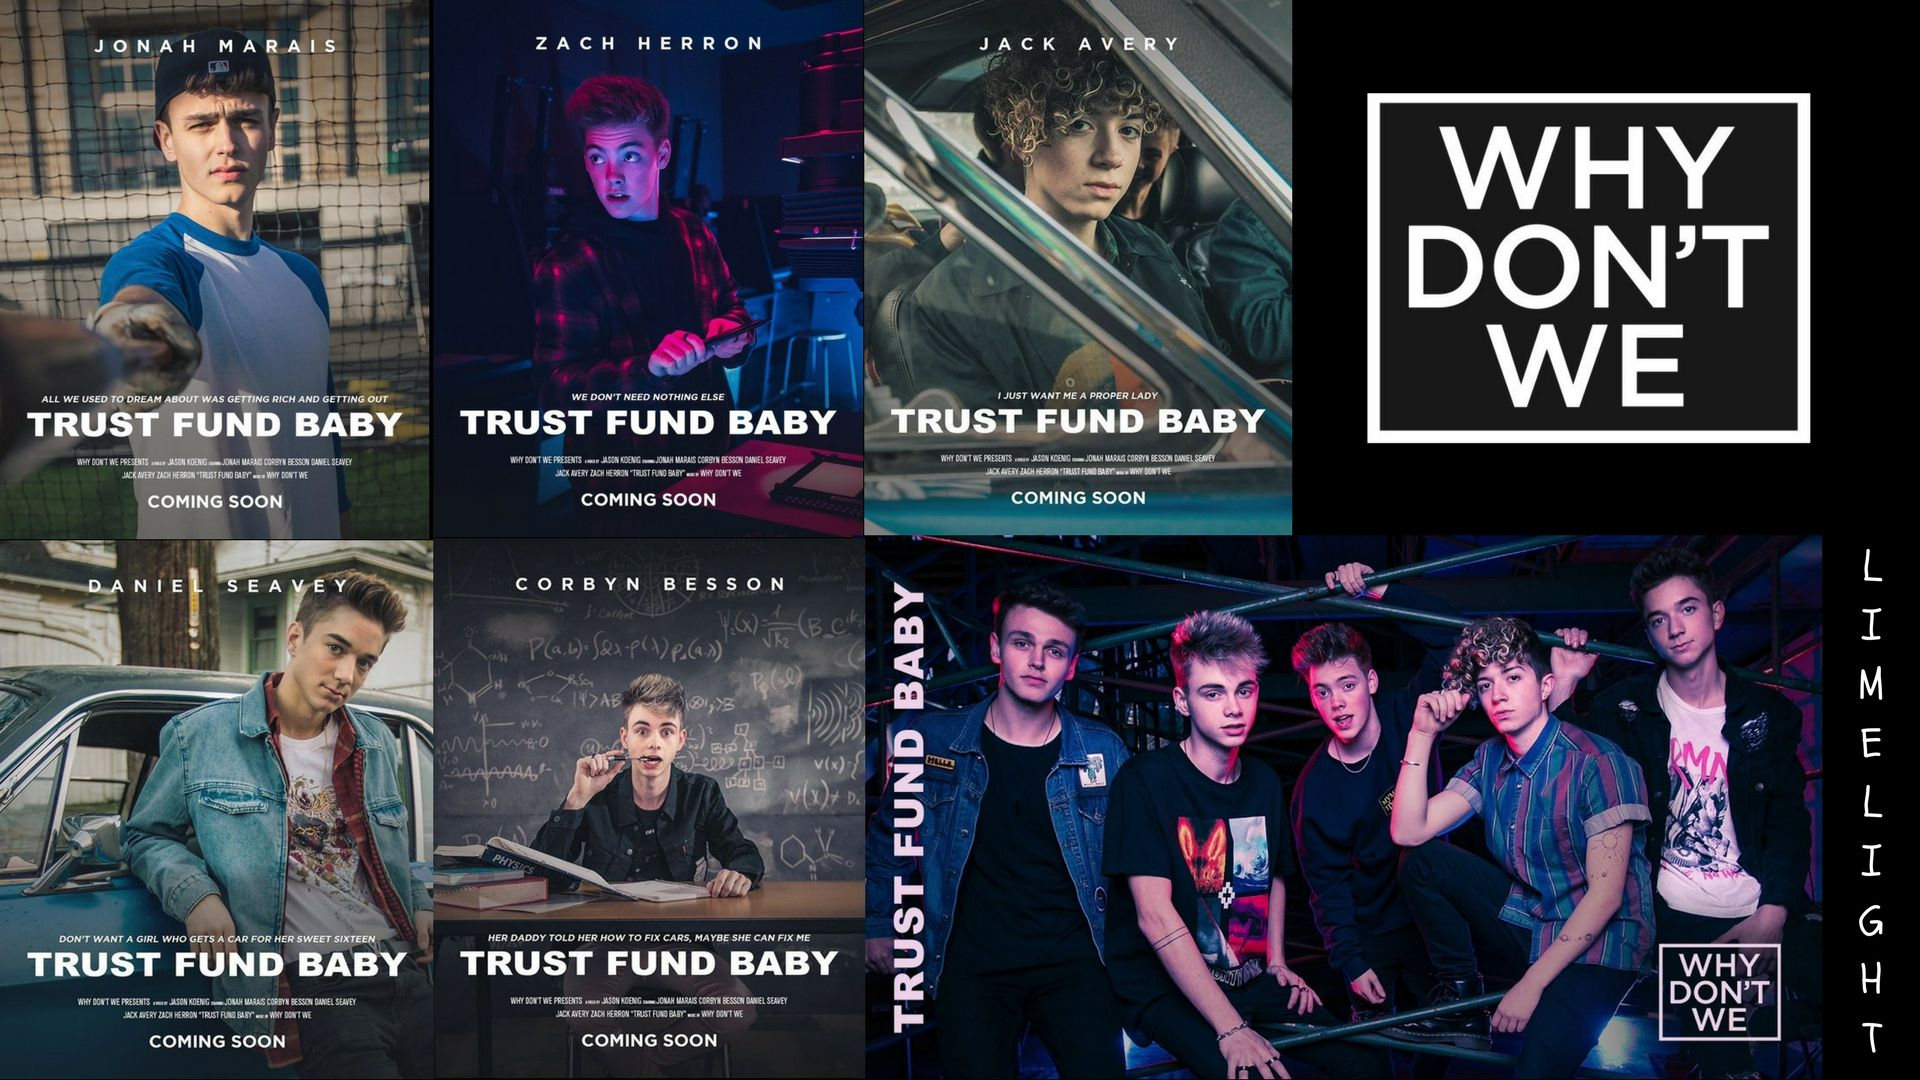 Why Dont We Trust Fund Baby themed computer wallpaper